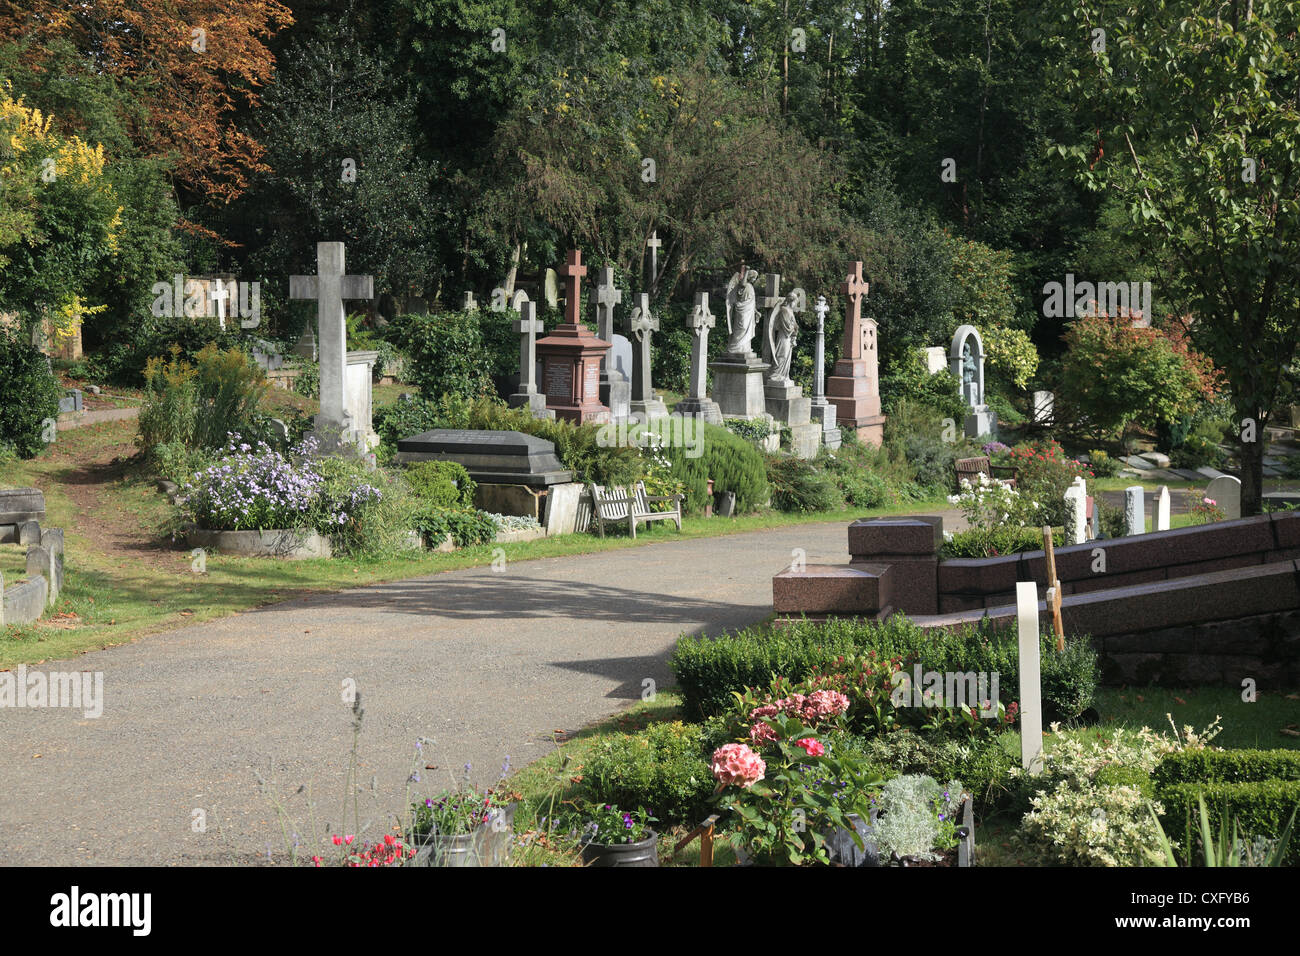 The Highgate East Cemetery in London England Stock Photo